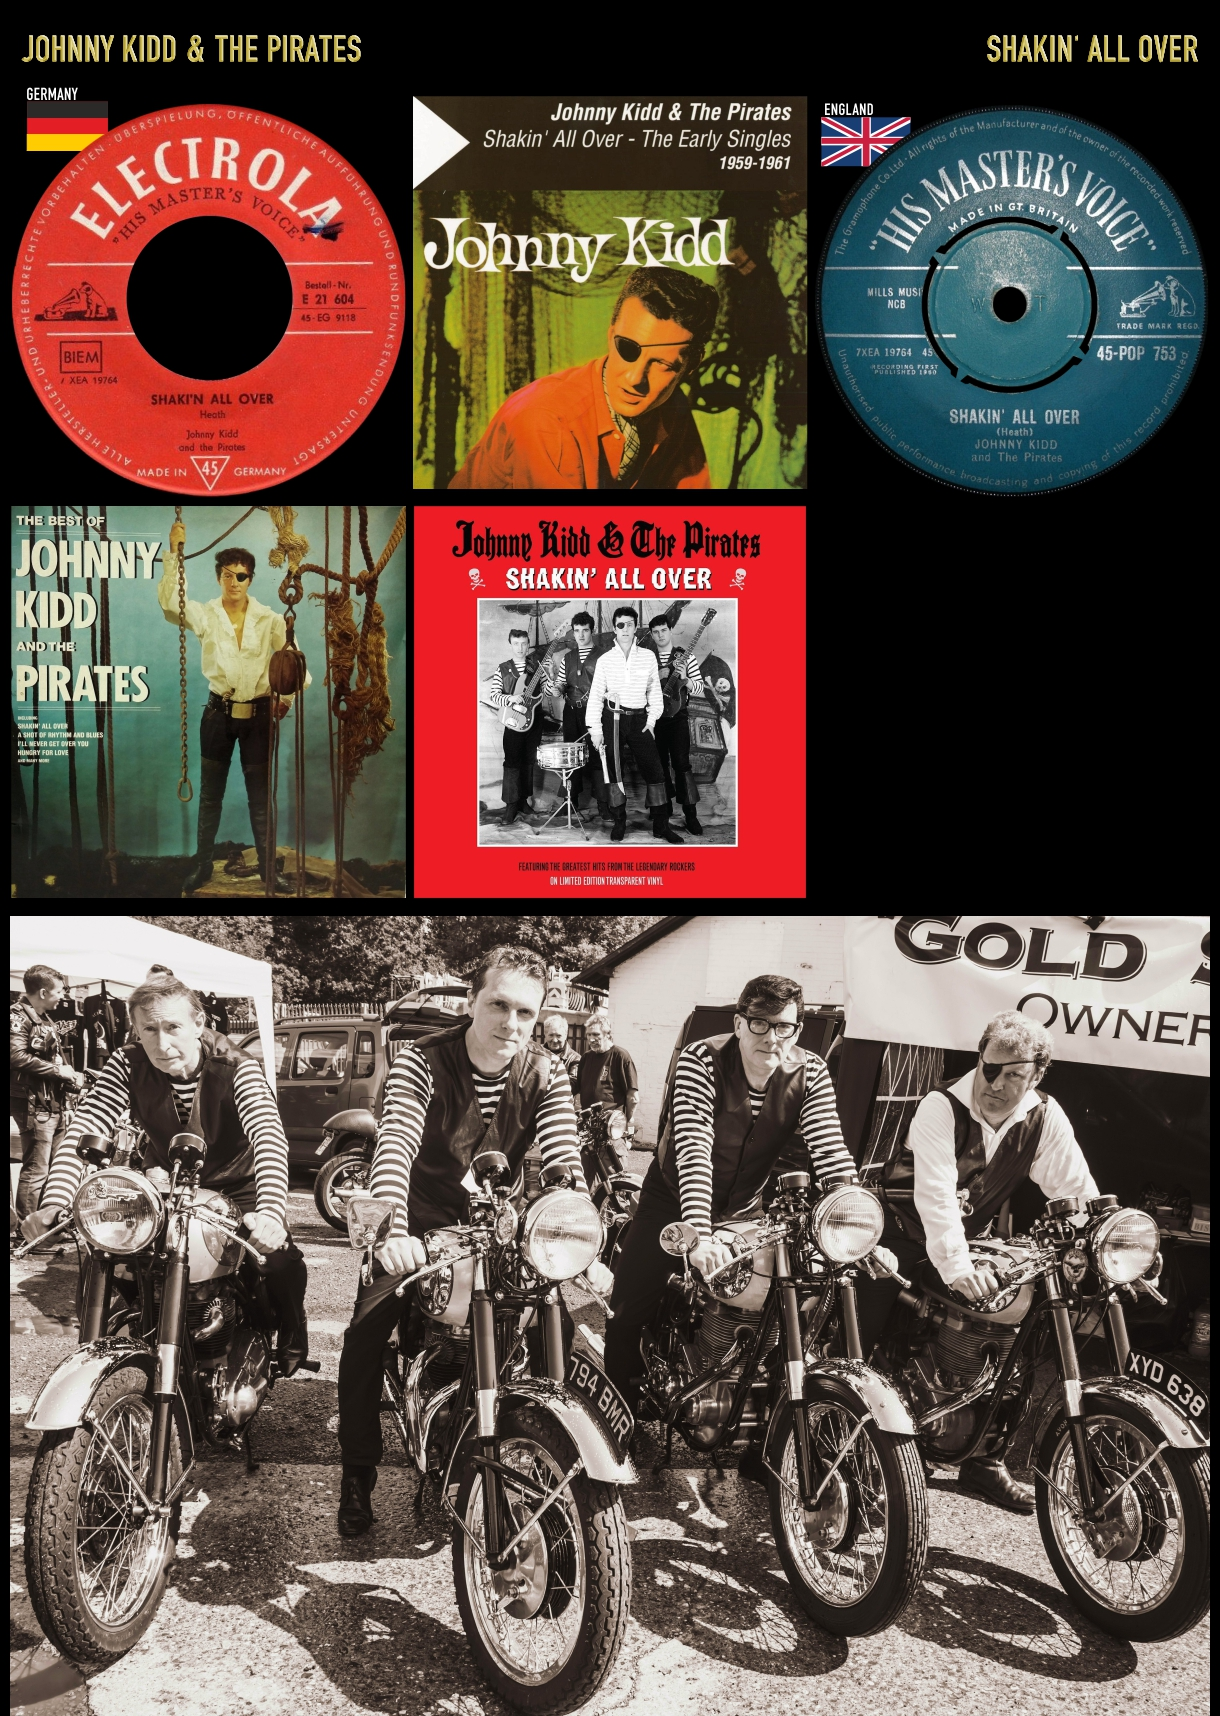 600625_Johnny Kidd & The Pirates_Shakin' All Over